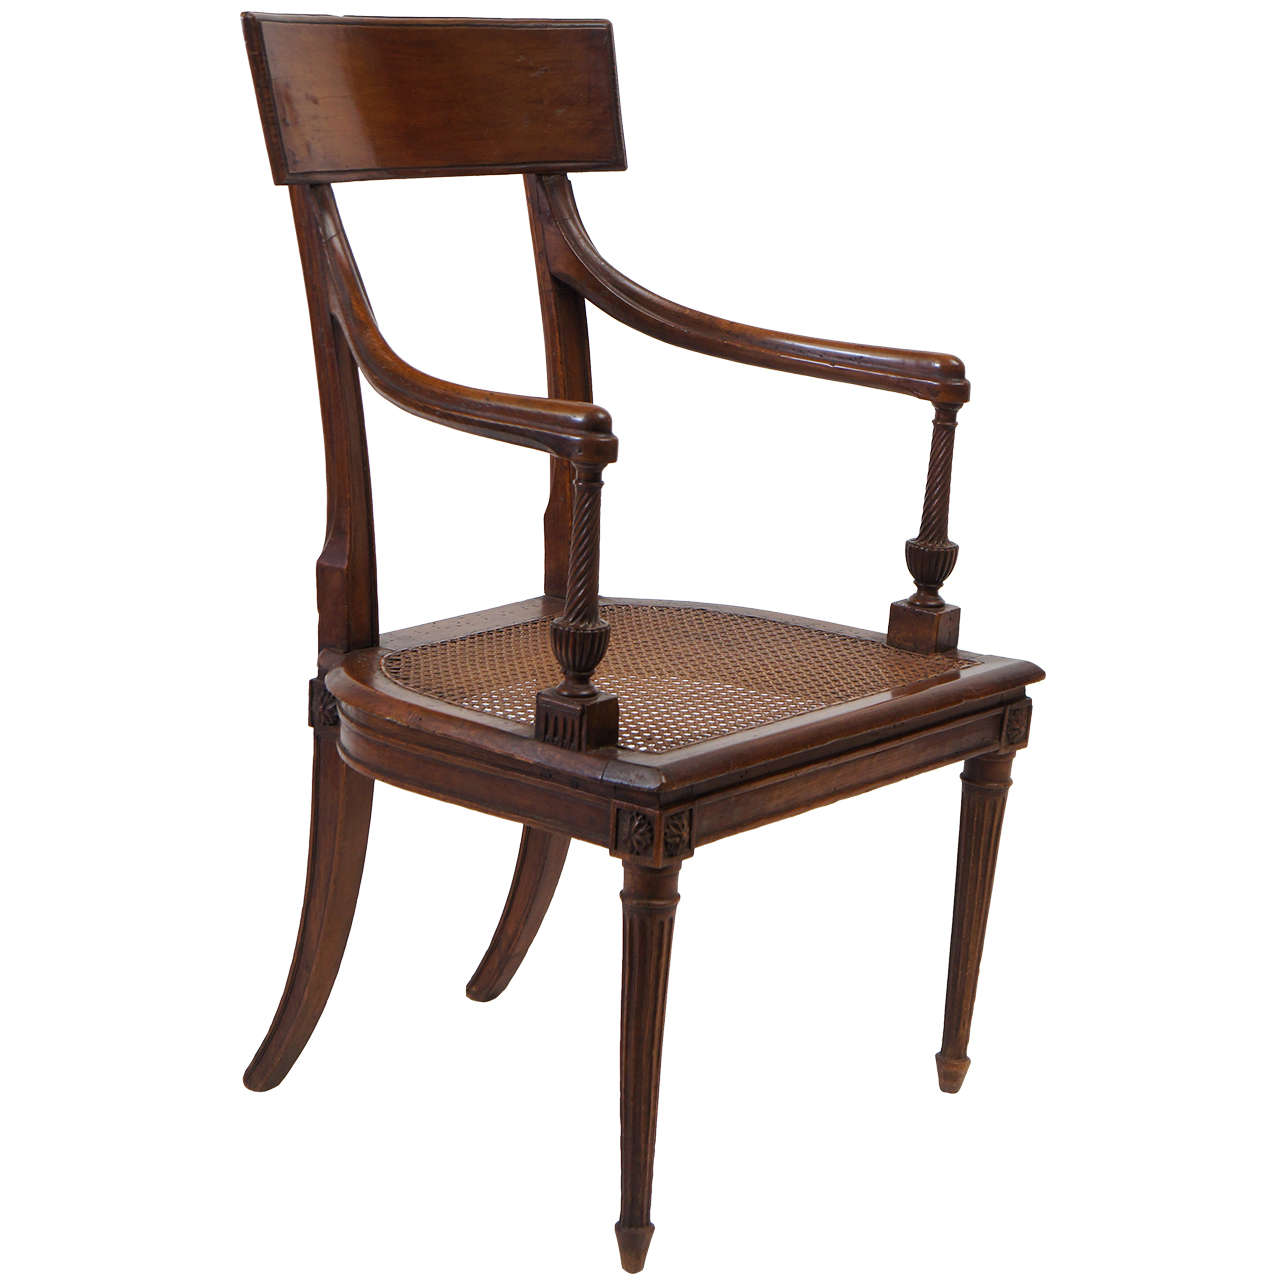 Louis XVI Fauteuil or Armchair Attributed to Georges Jacob, France, circa 1785